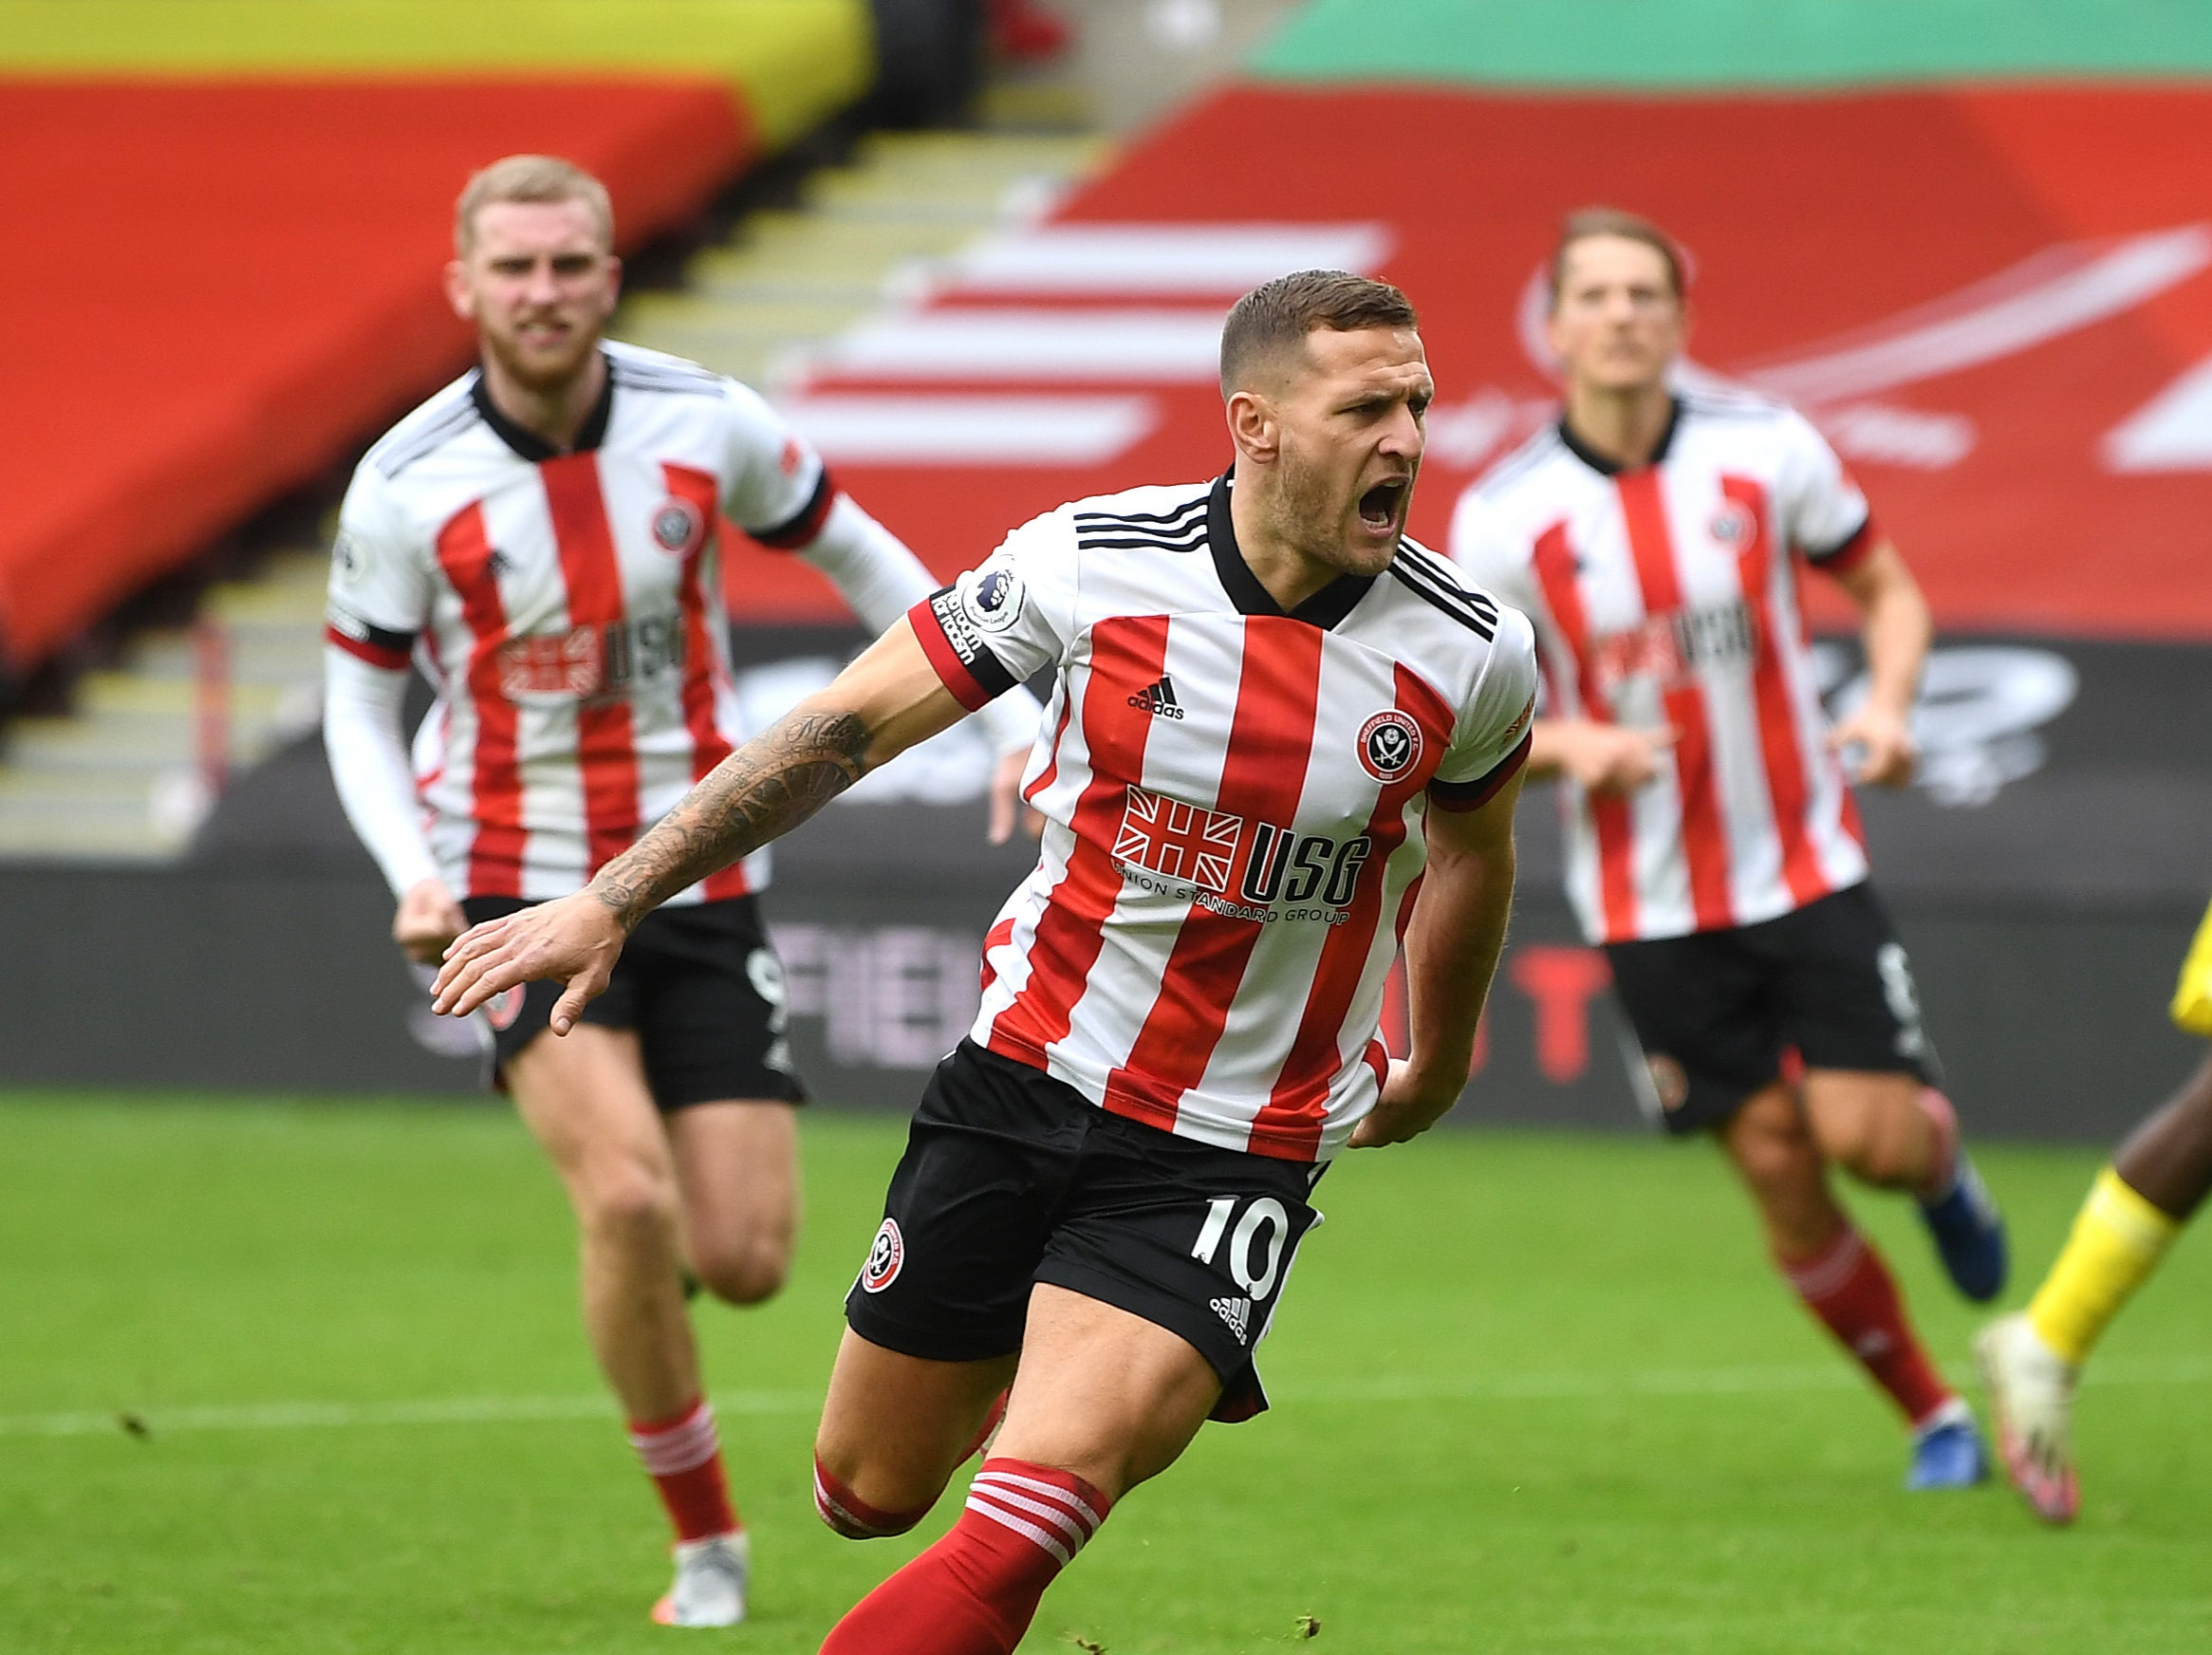 Sheffield United vs Fulham result: Late Billy Sharp penalty salvages point for desperate hosts